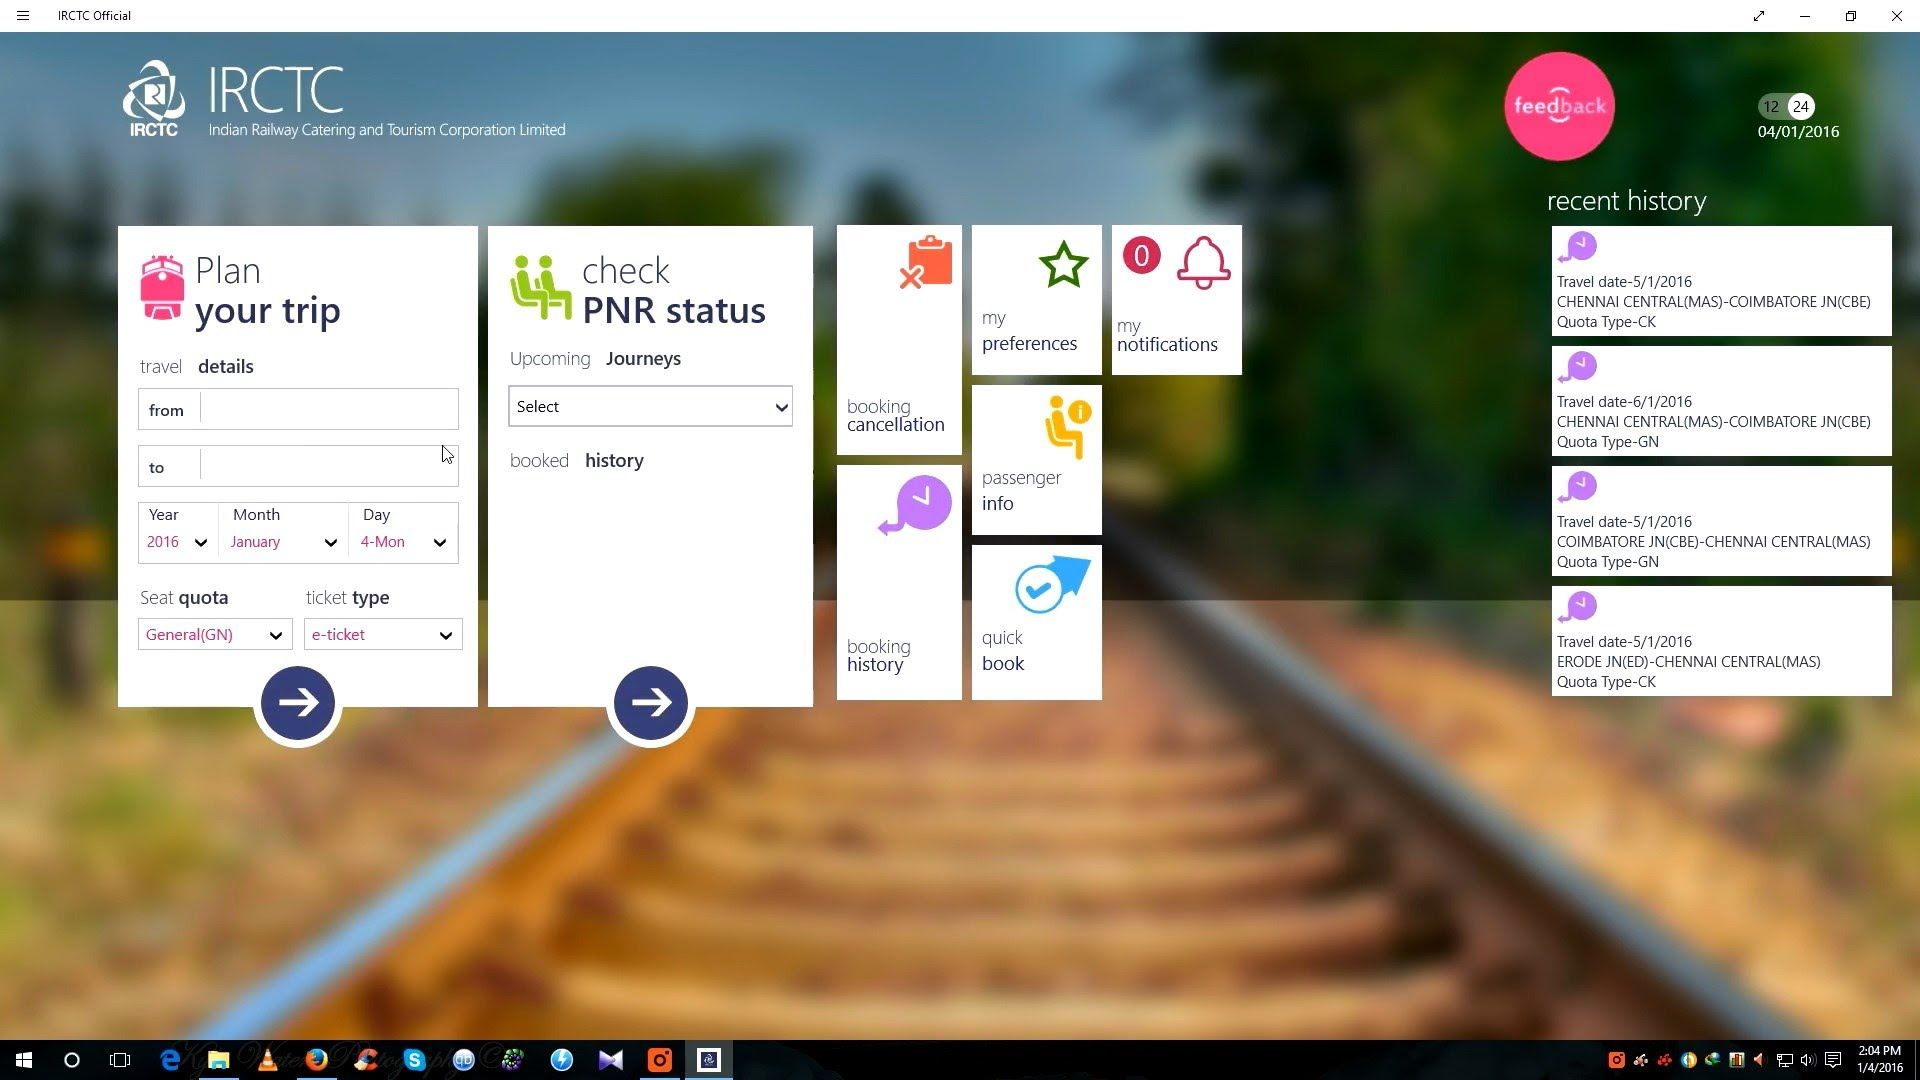 IRCTC App for Windows 10/Windows 8.1 PC/Mobile Neat